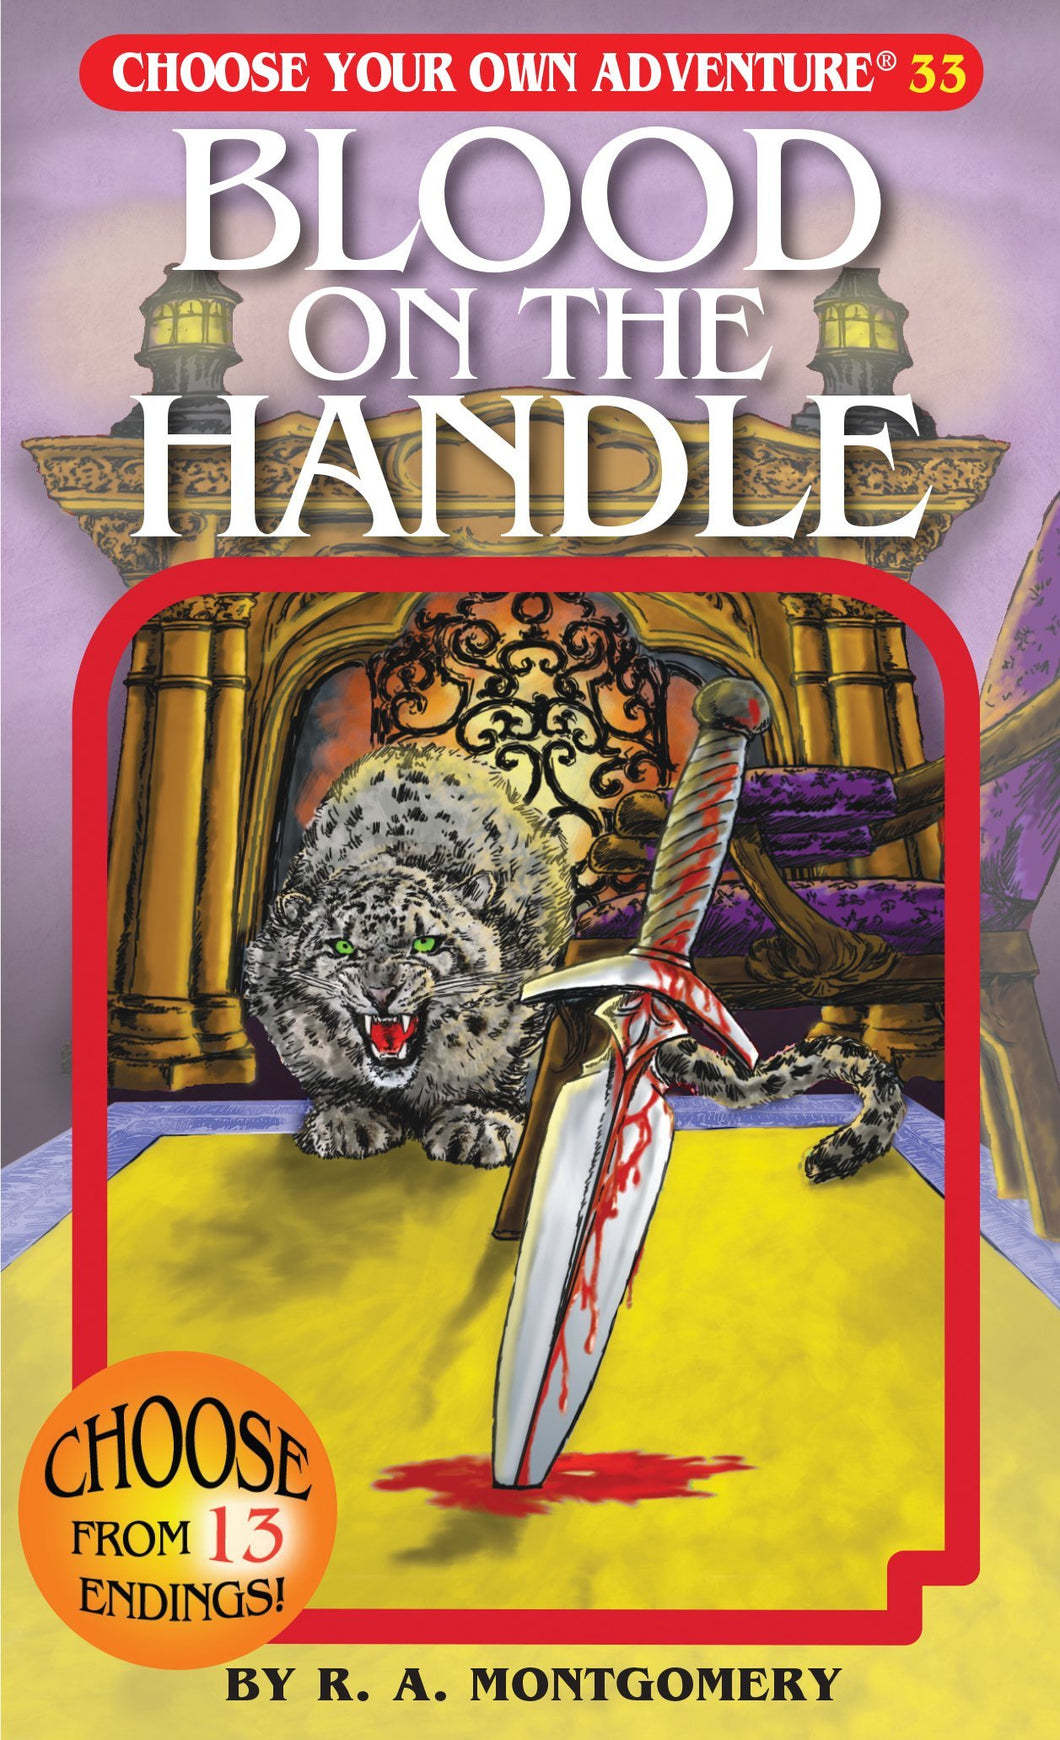 Choose Your Own Adventure Book-Blood on the Handle #33